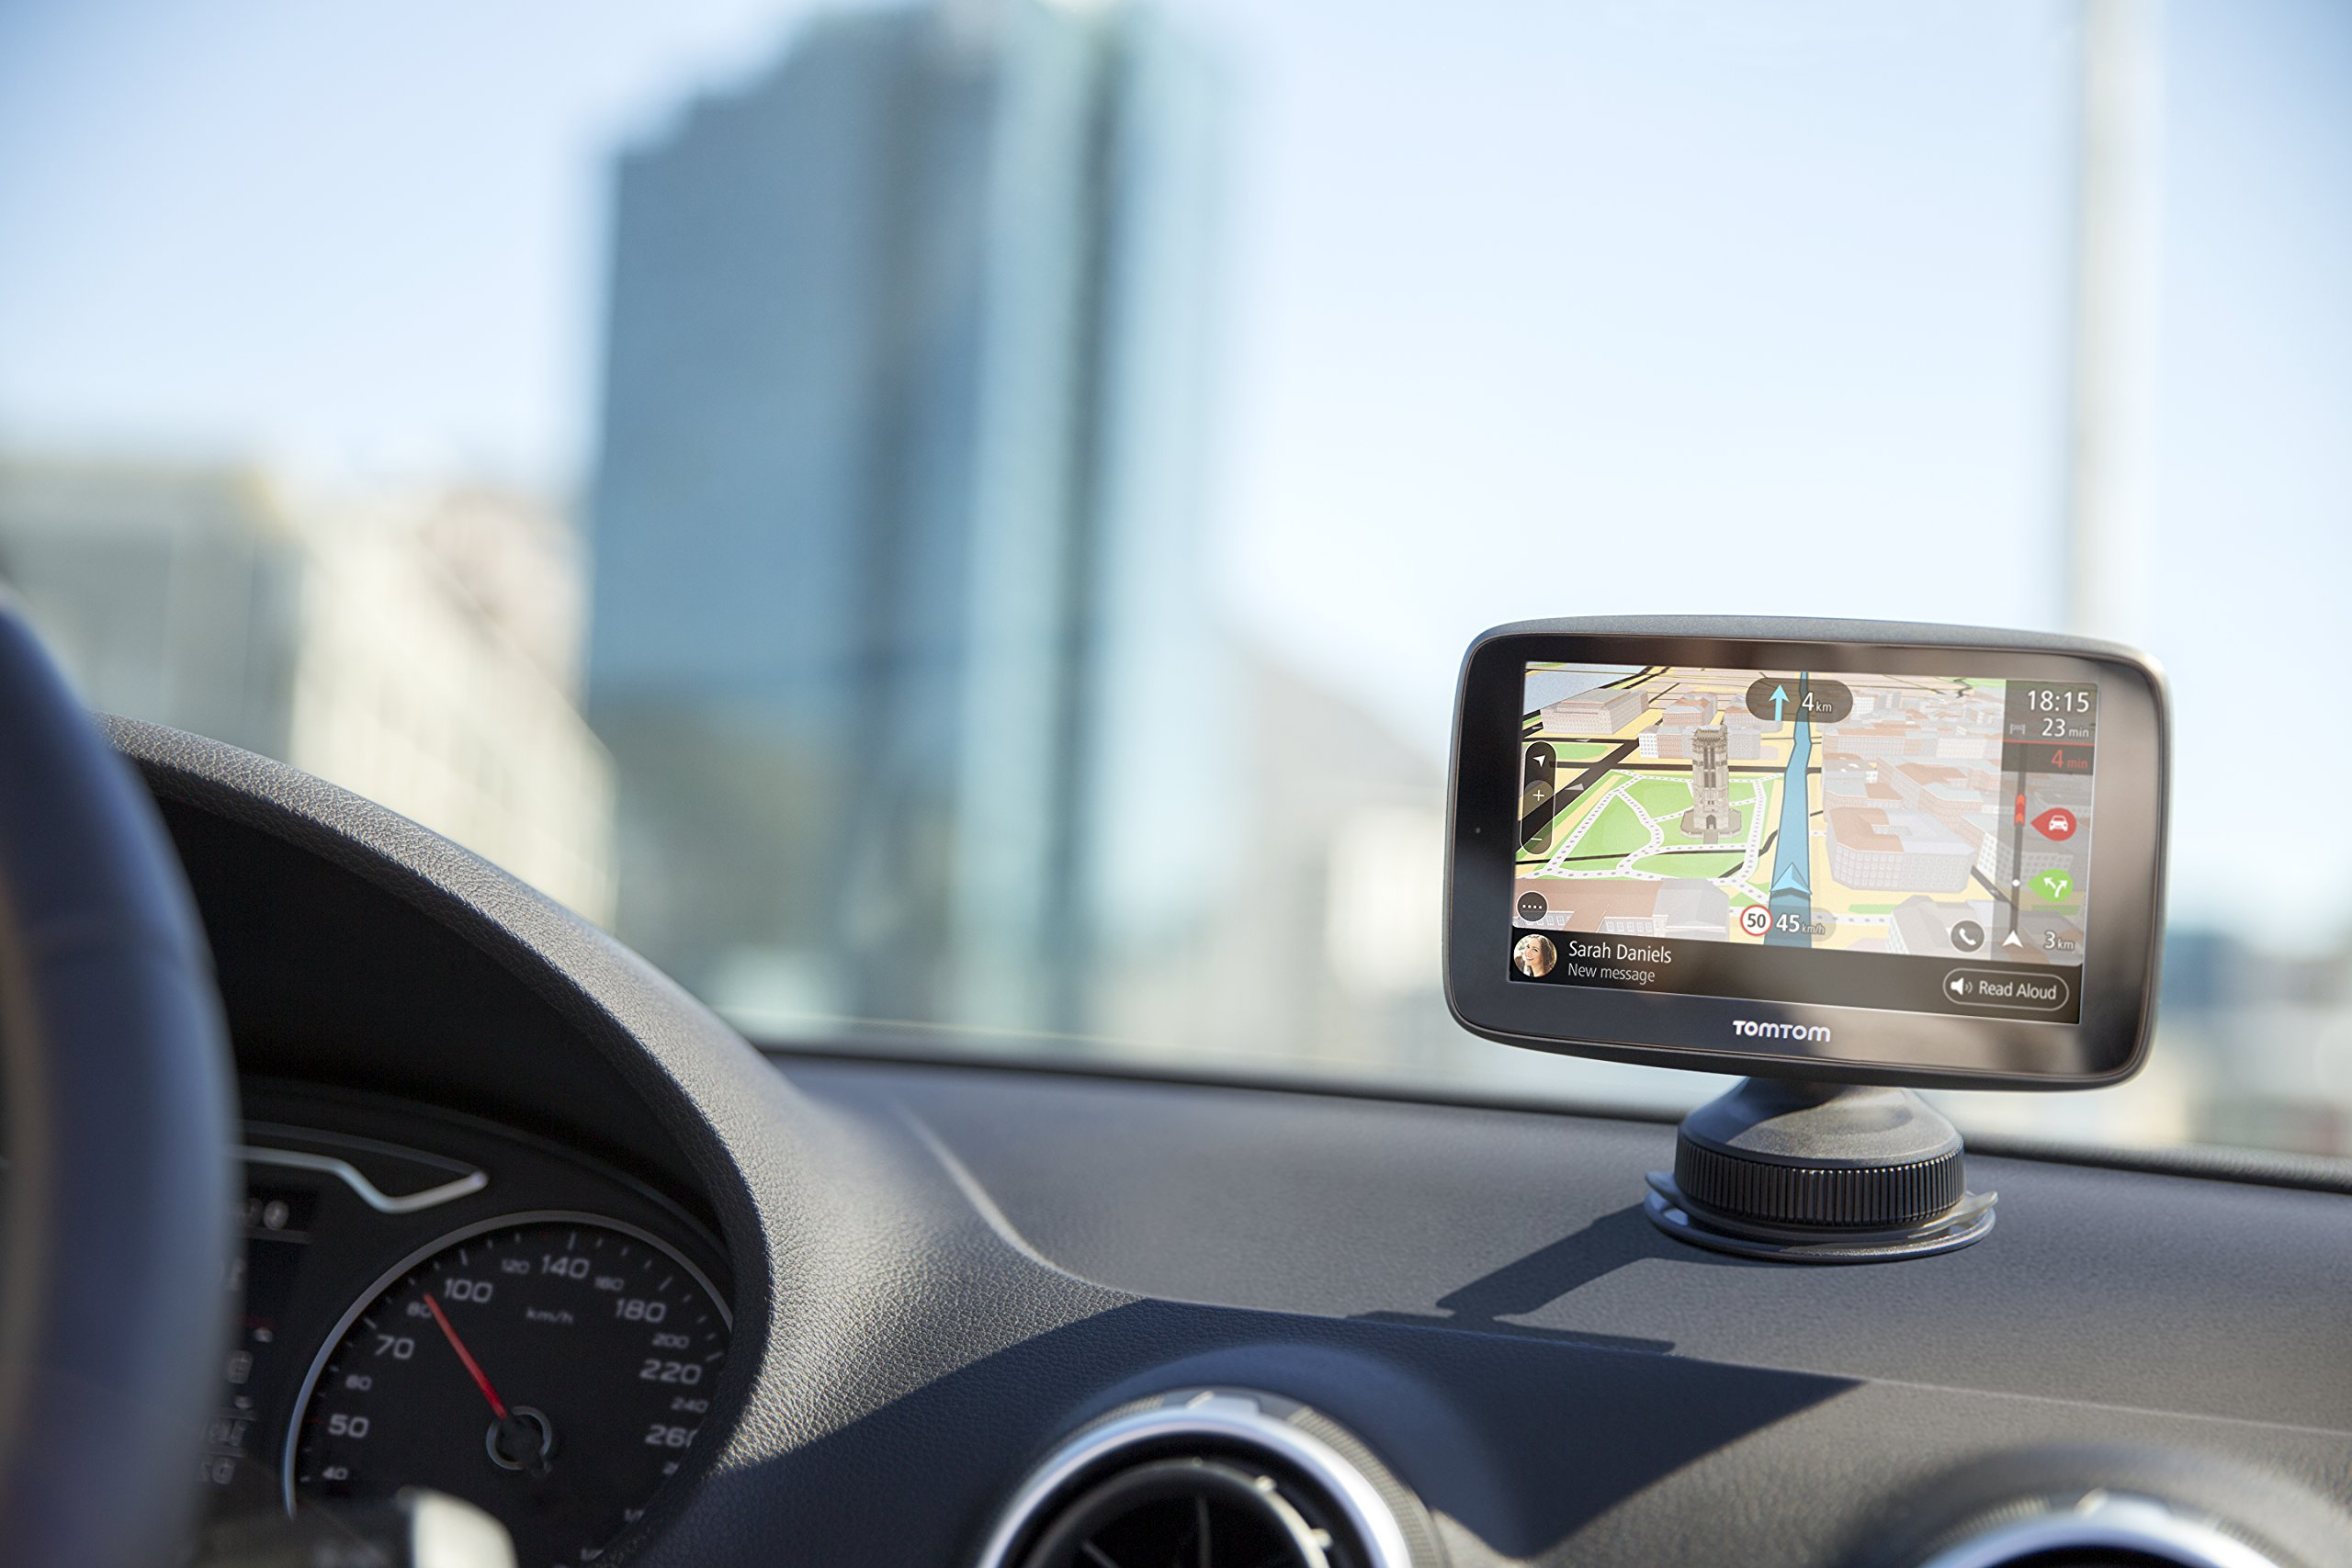 TomTom-GO-6200-World-Navigationsgert-6-Touchscreen-Flash-BatterieAkku-Zigarettenanznder-USB-interne